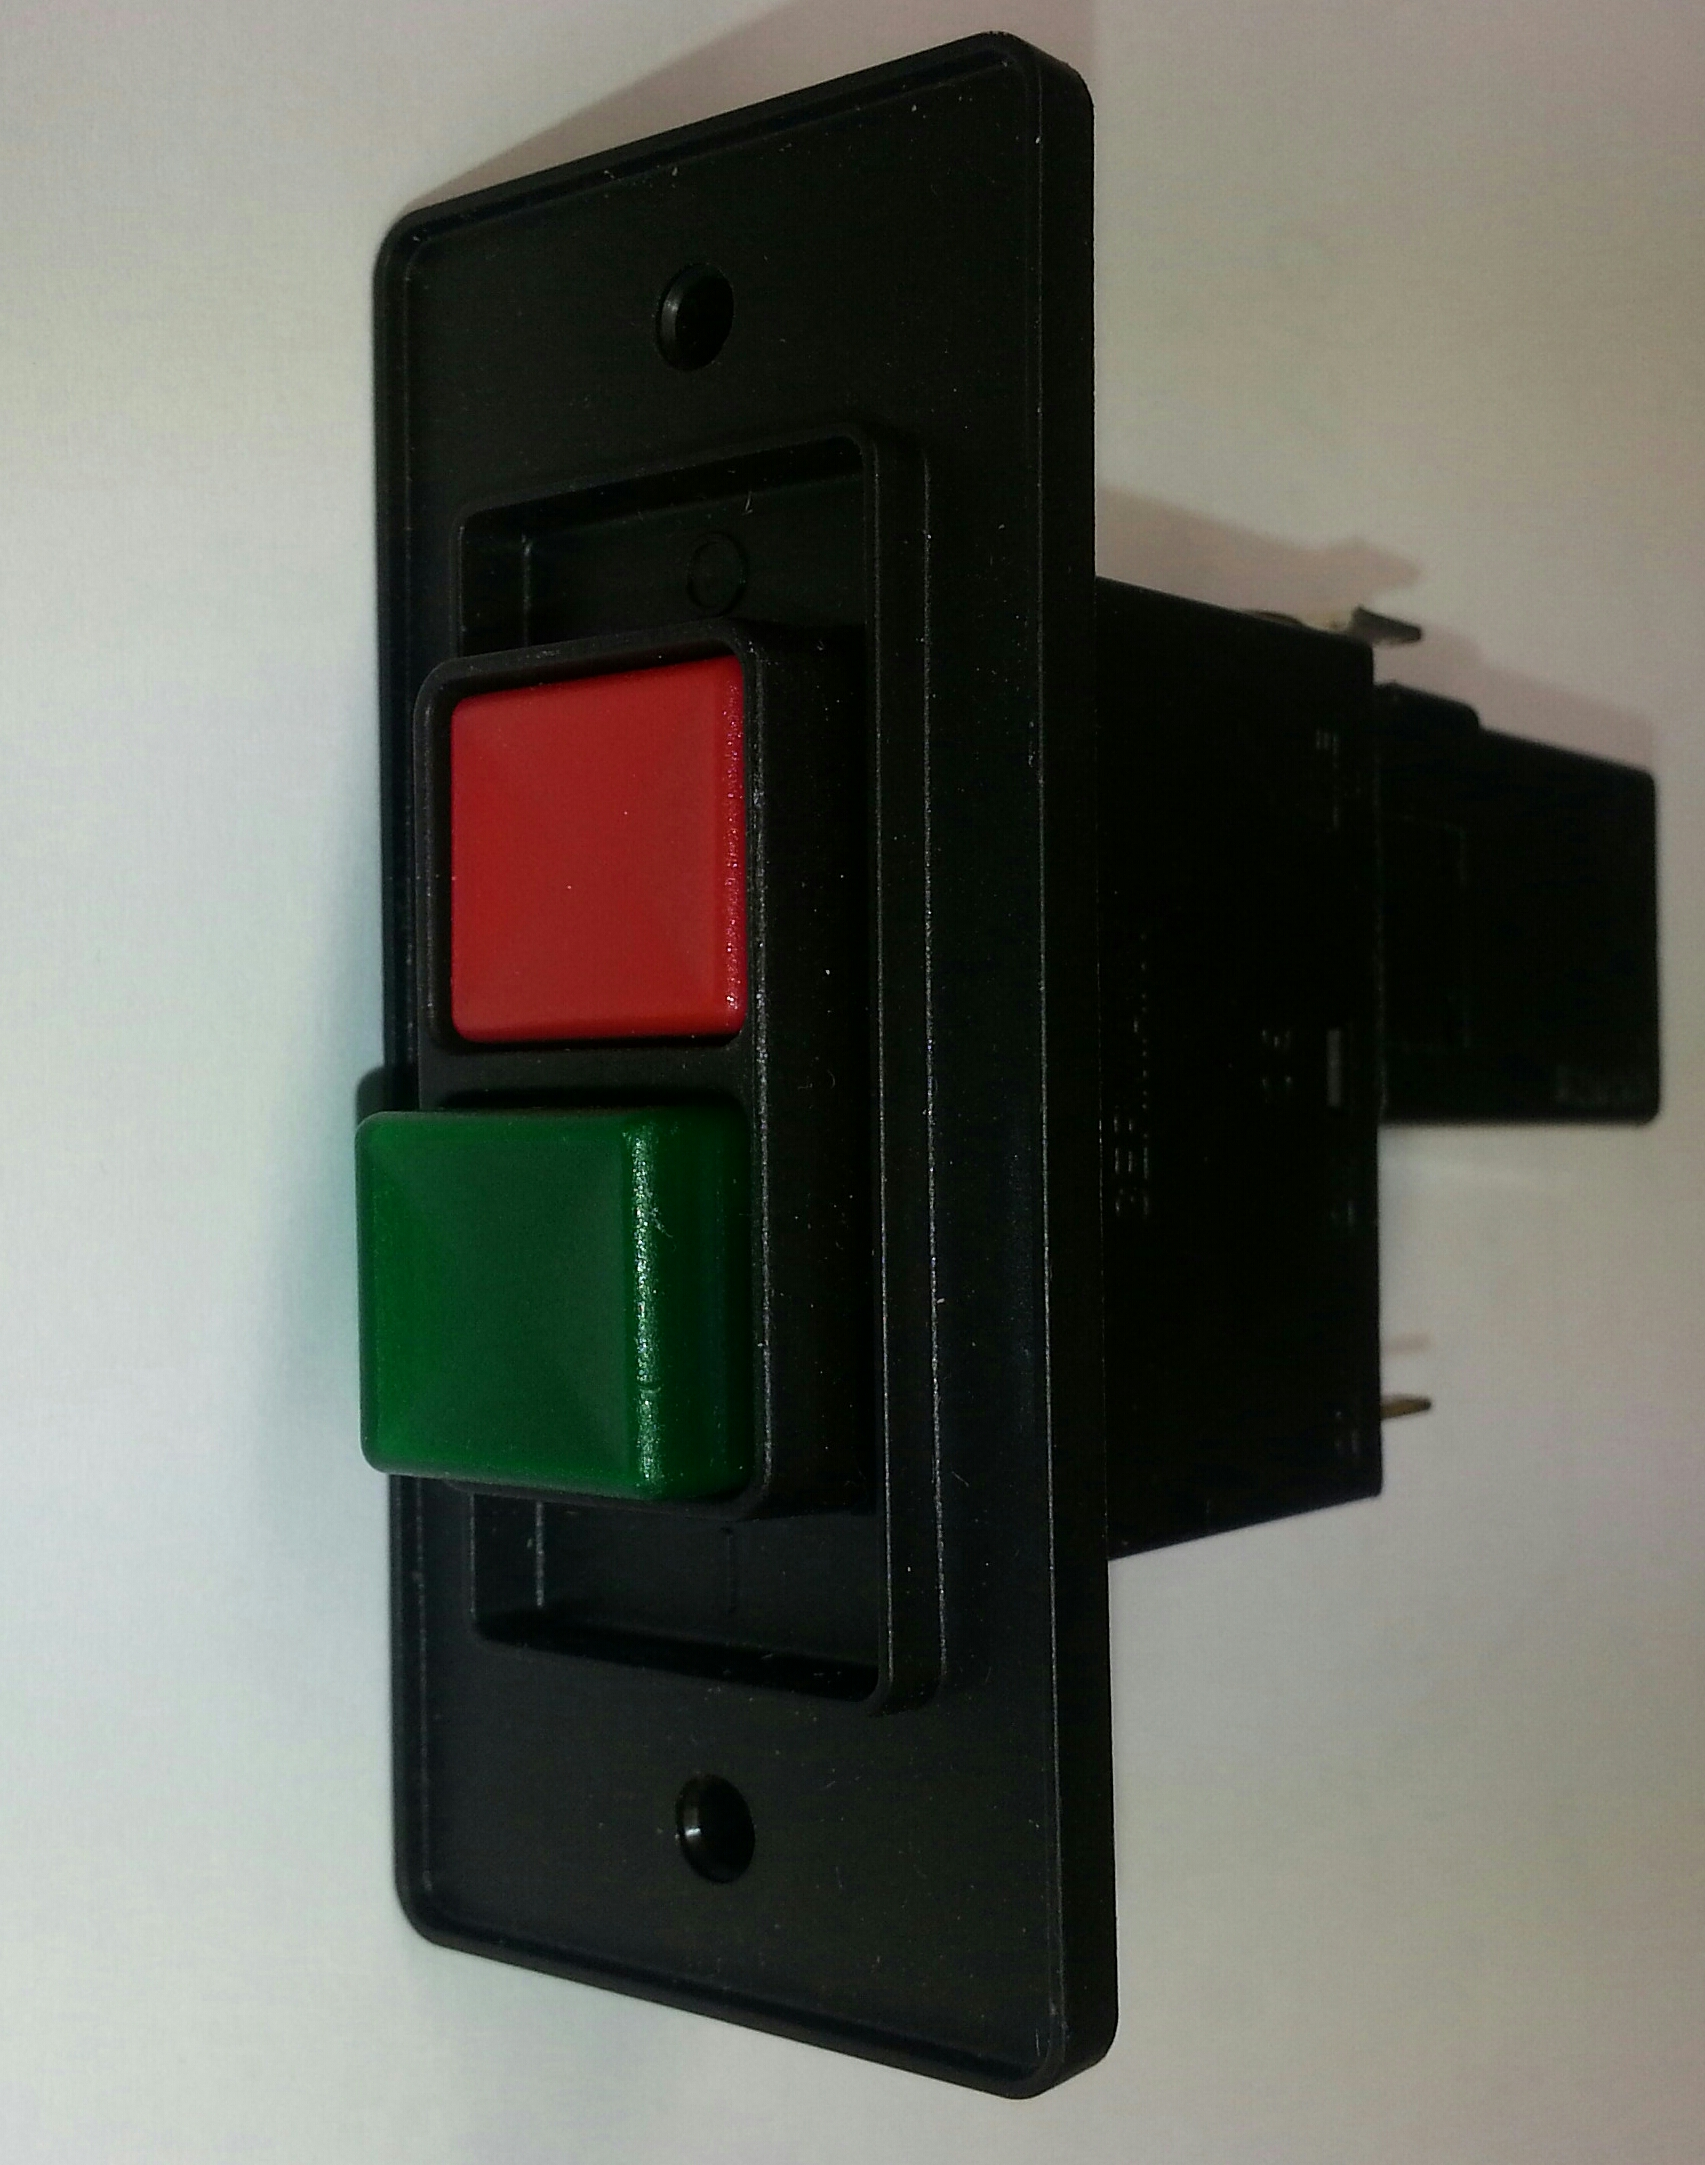 Push button on/off switch